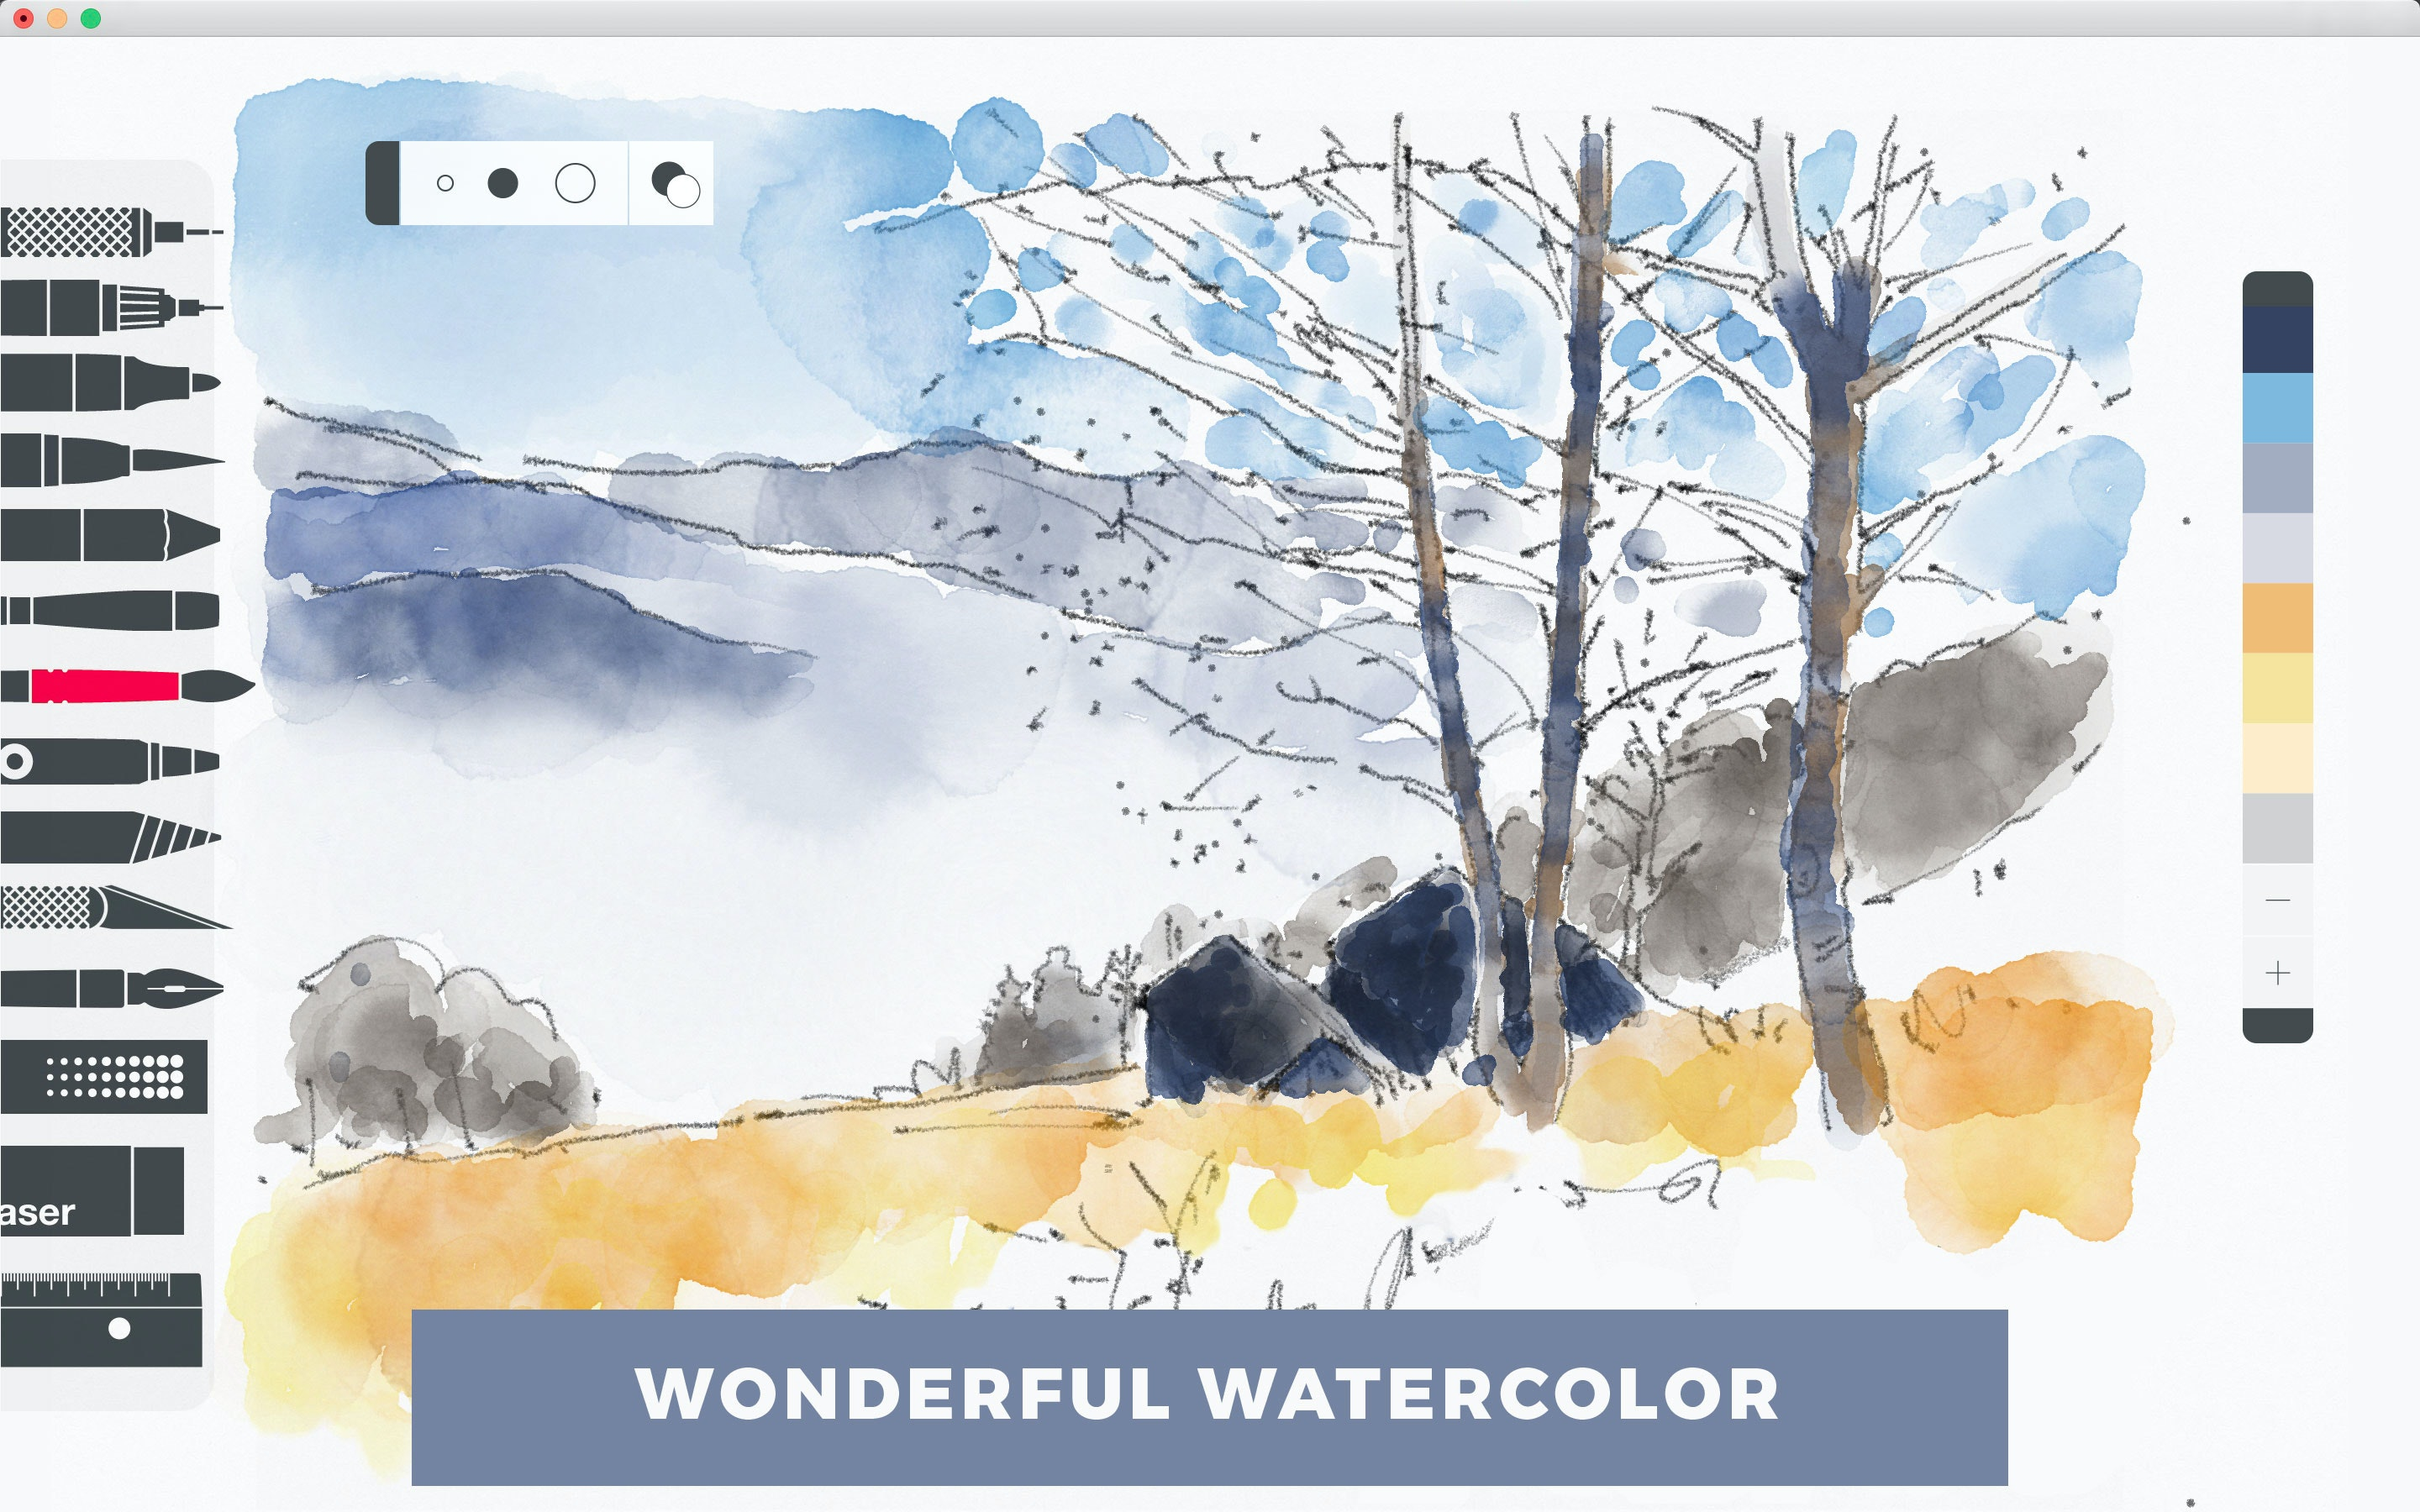 Create your own watercolor digital art.